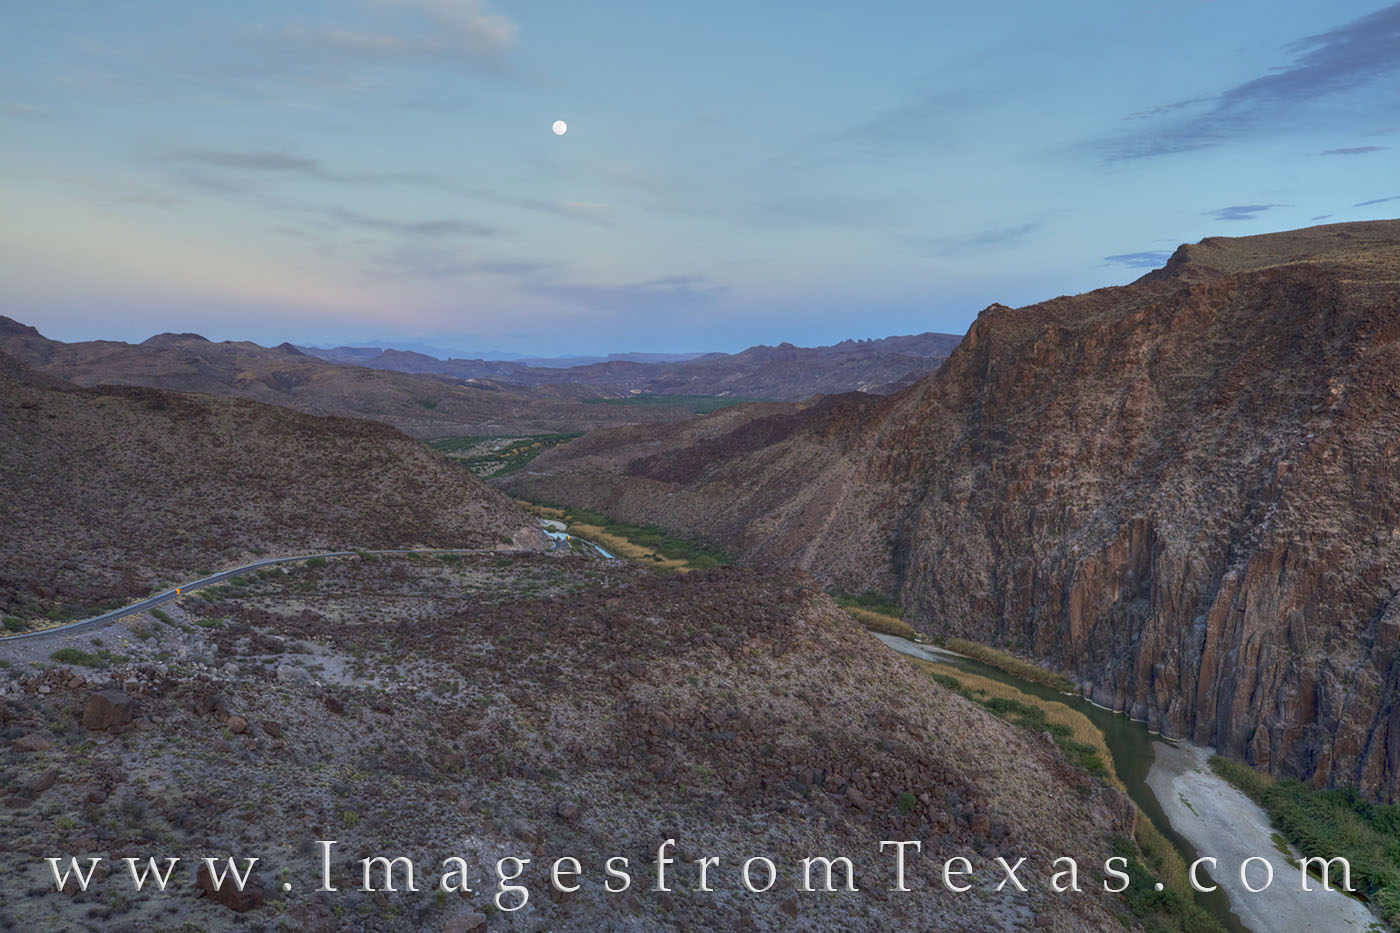 big bend ranch state park, moonrise, rio grande, dom hill, big hill, texas border, texas landscapes, big bend, FM 170, lajitas, photo